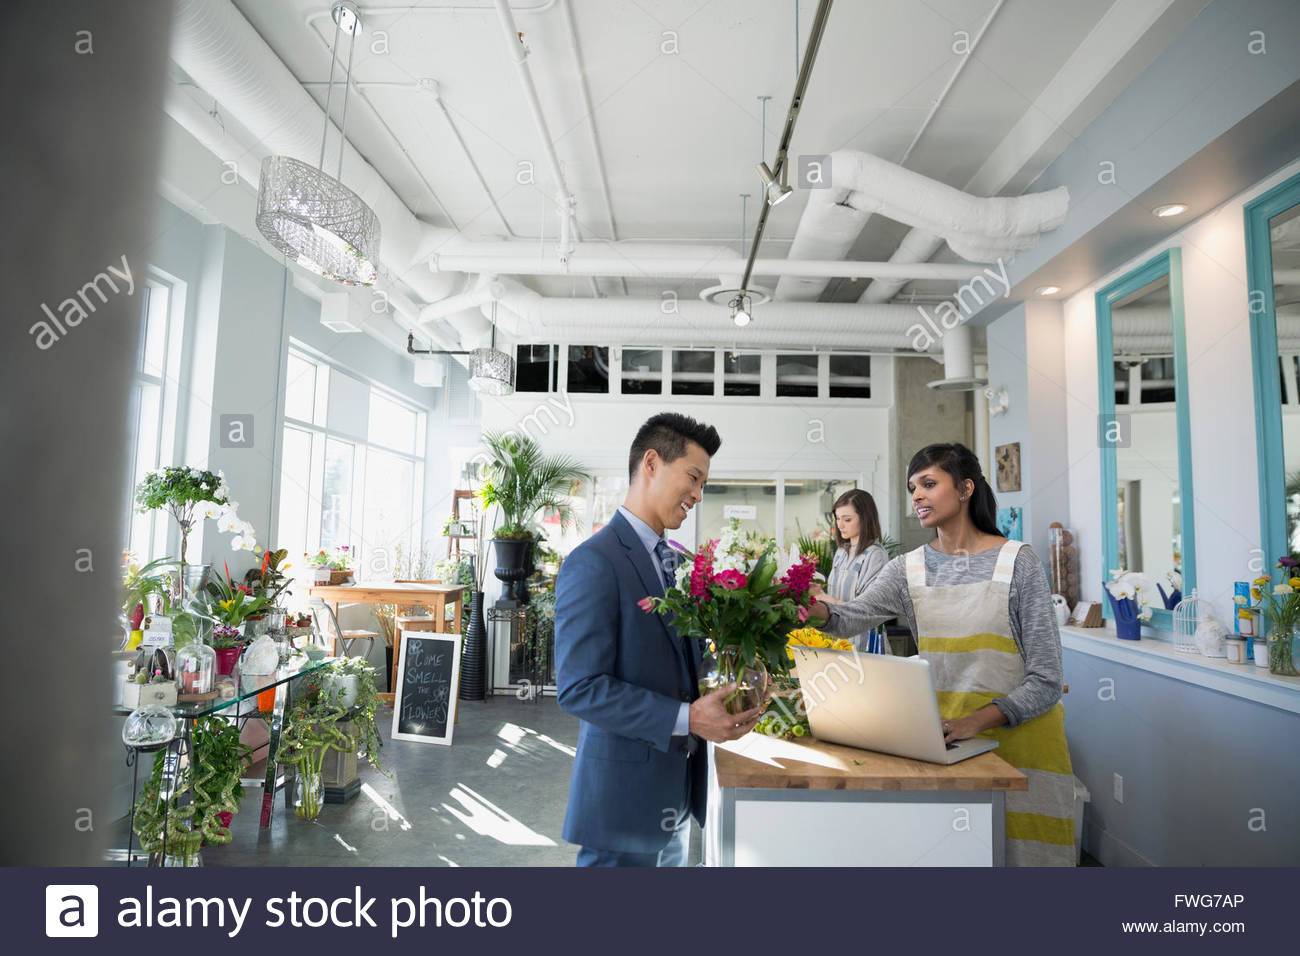 Customer buying bouquet in flower shop - Stock Image